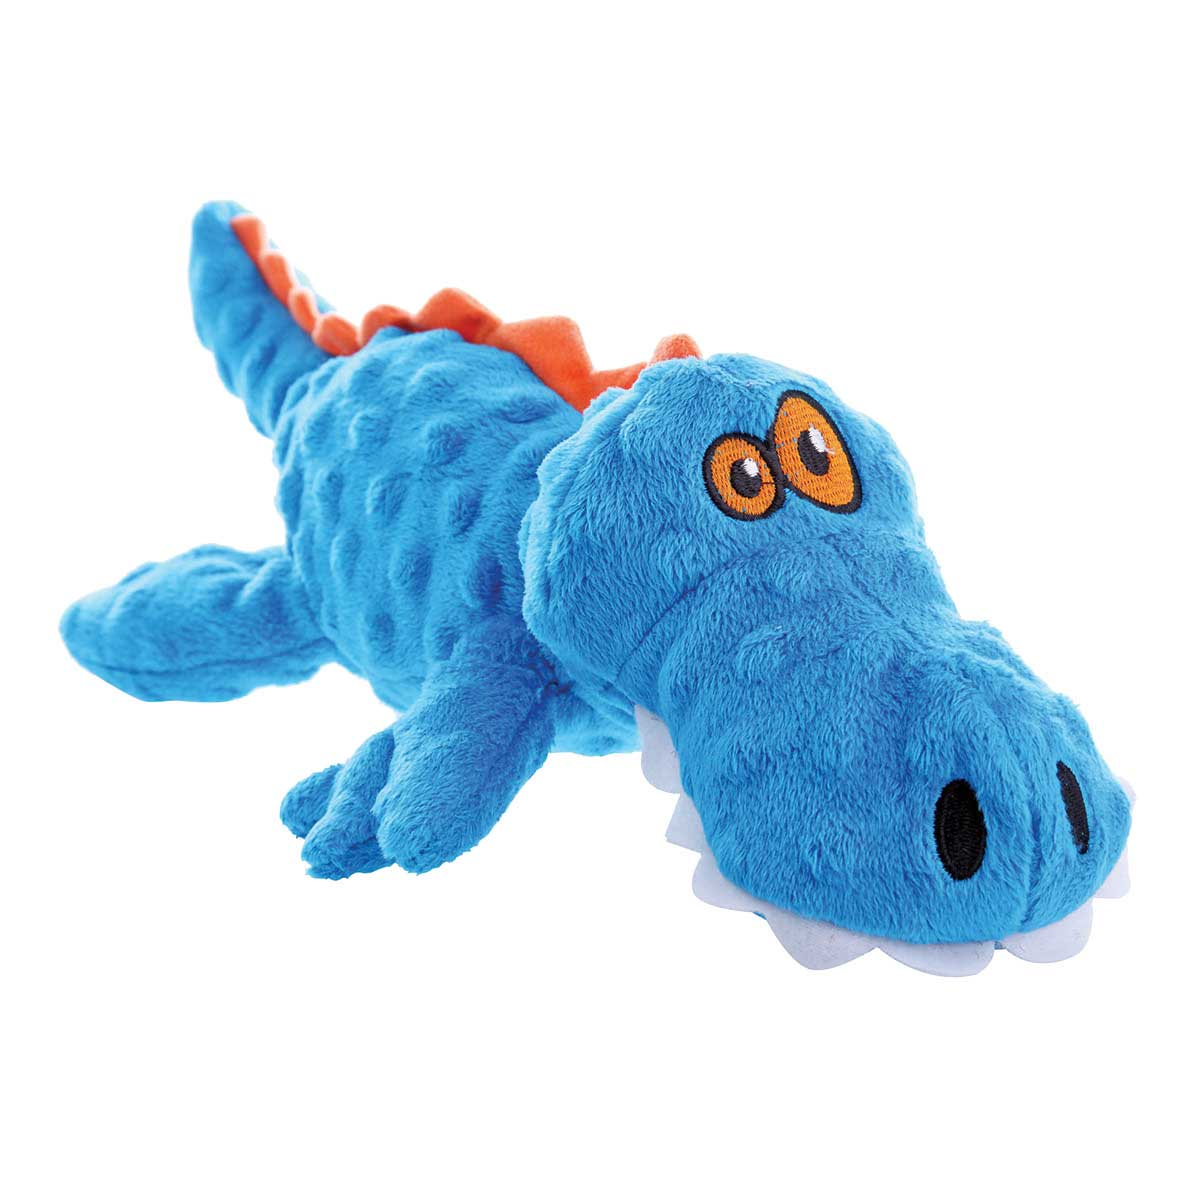 goDog Just For Me Blue Gator Dog Toy With Chew Guard